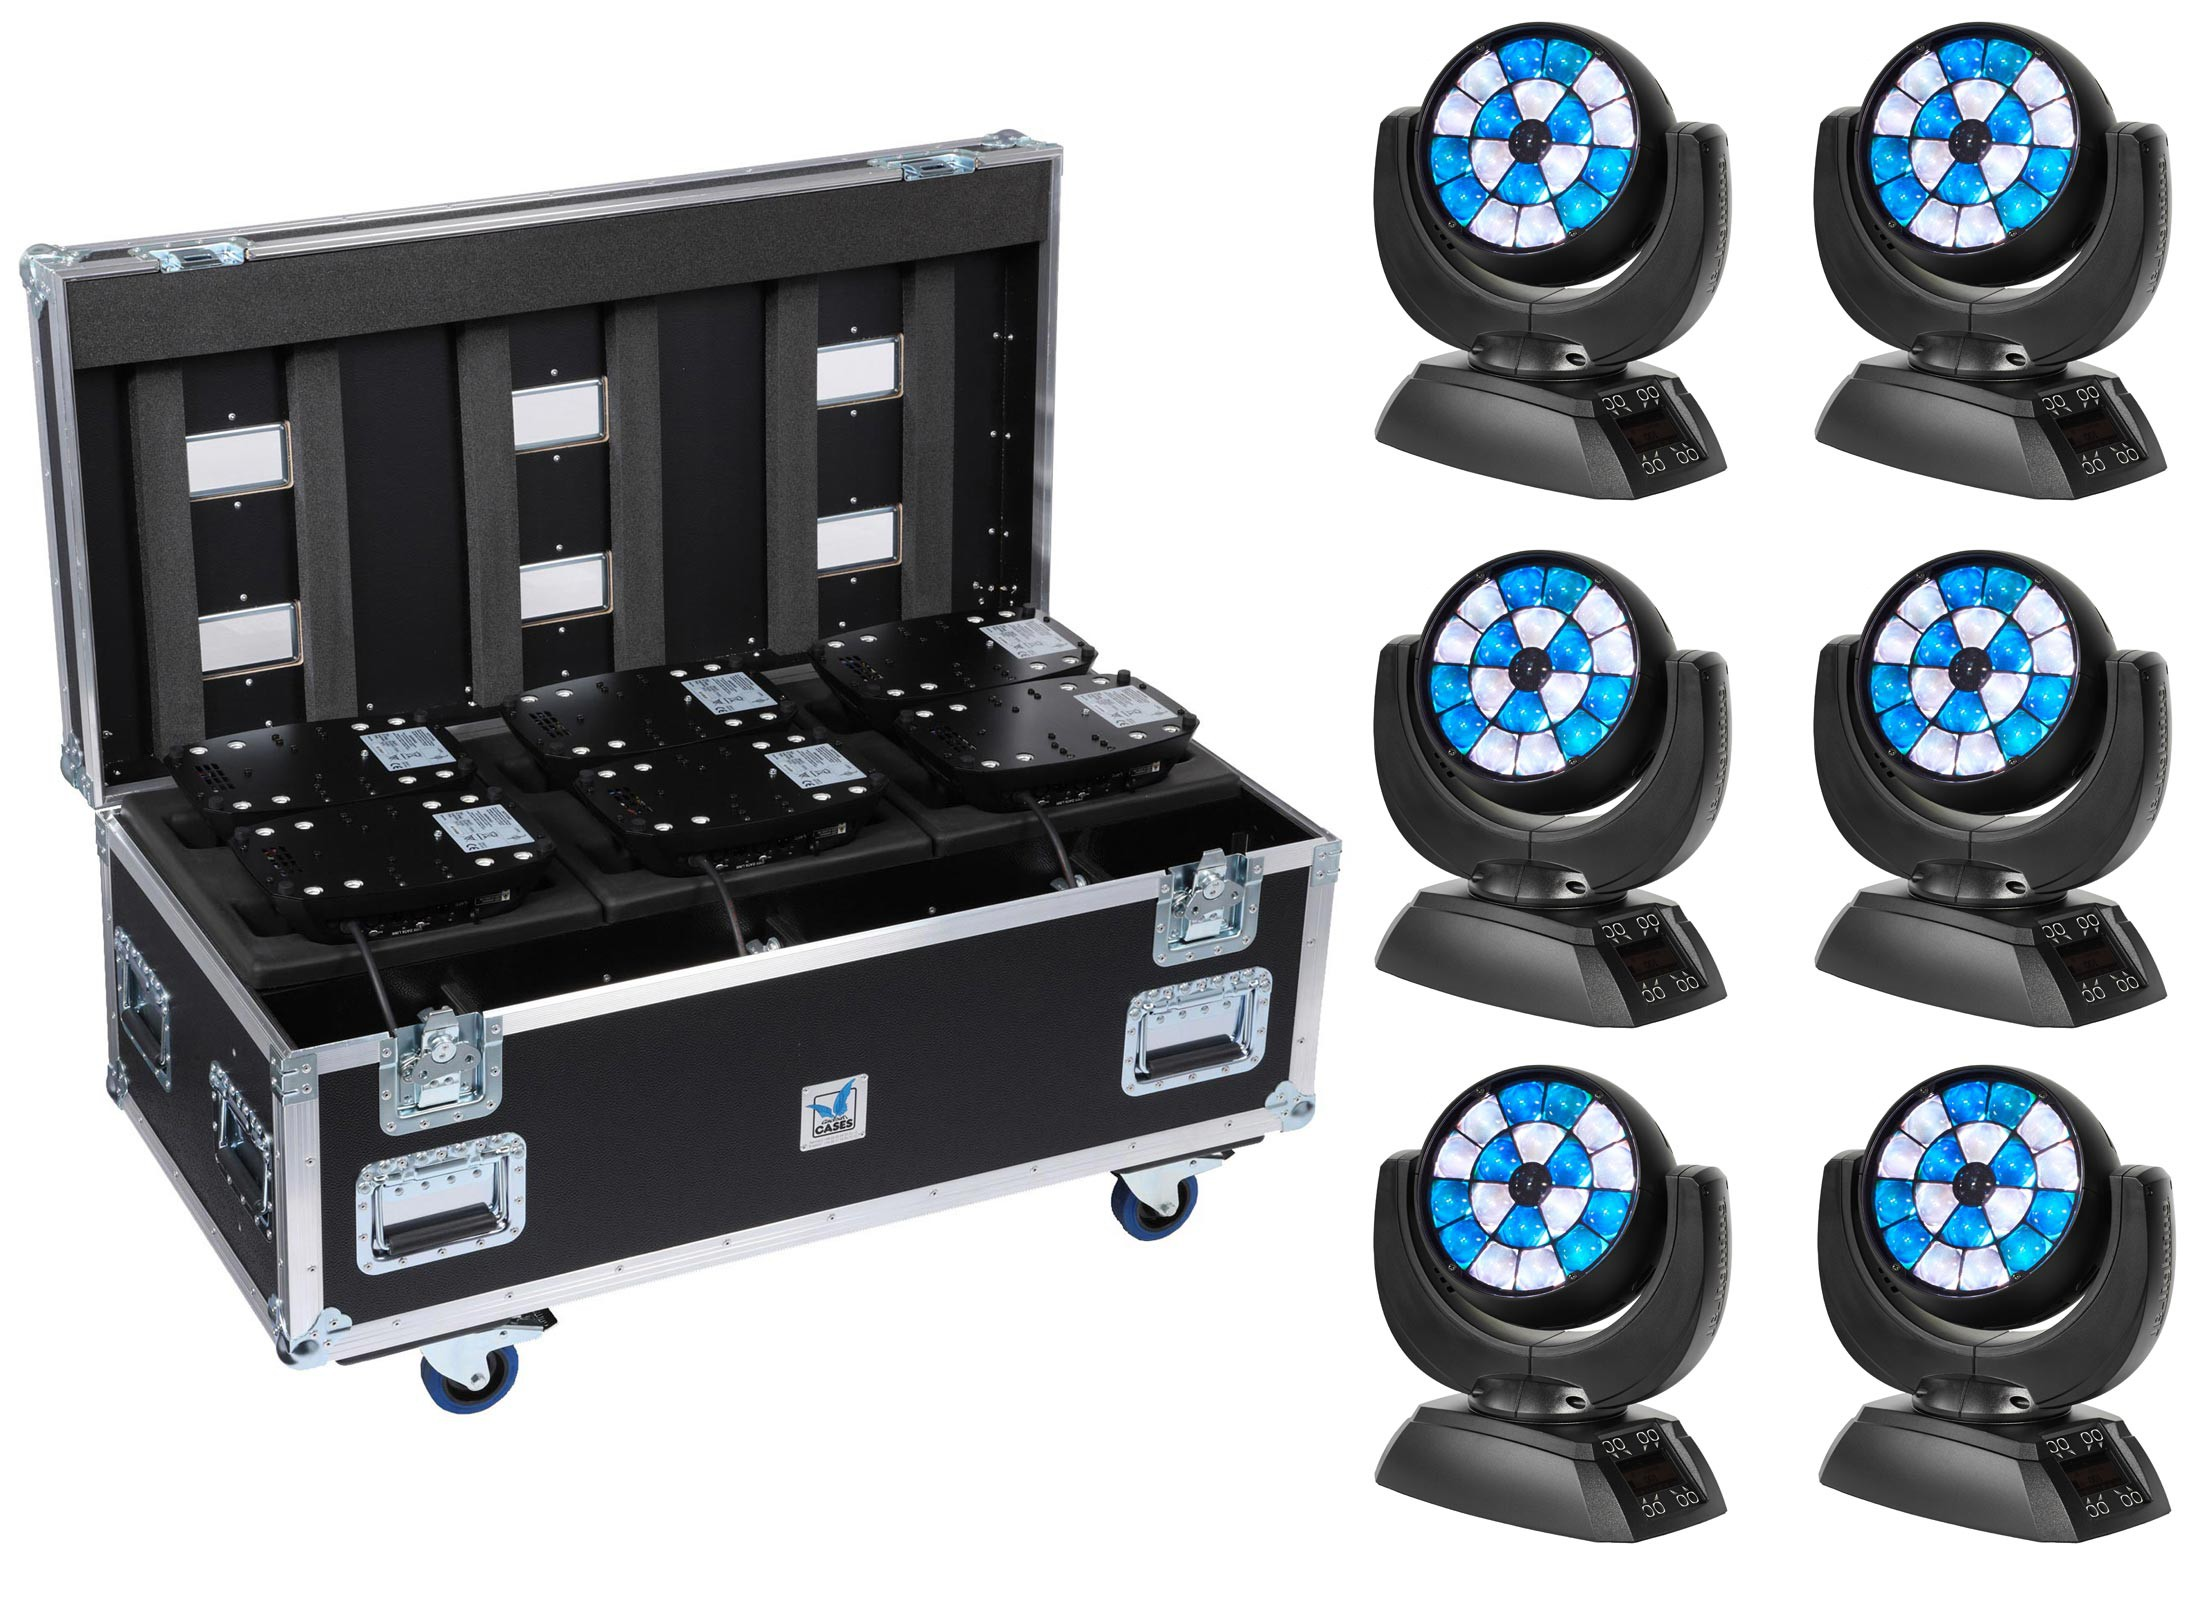 jb lighting sparx 7 led moving head wash 6 set online at. Black Bedroom Furniture Sets. Home Design Ideas